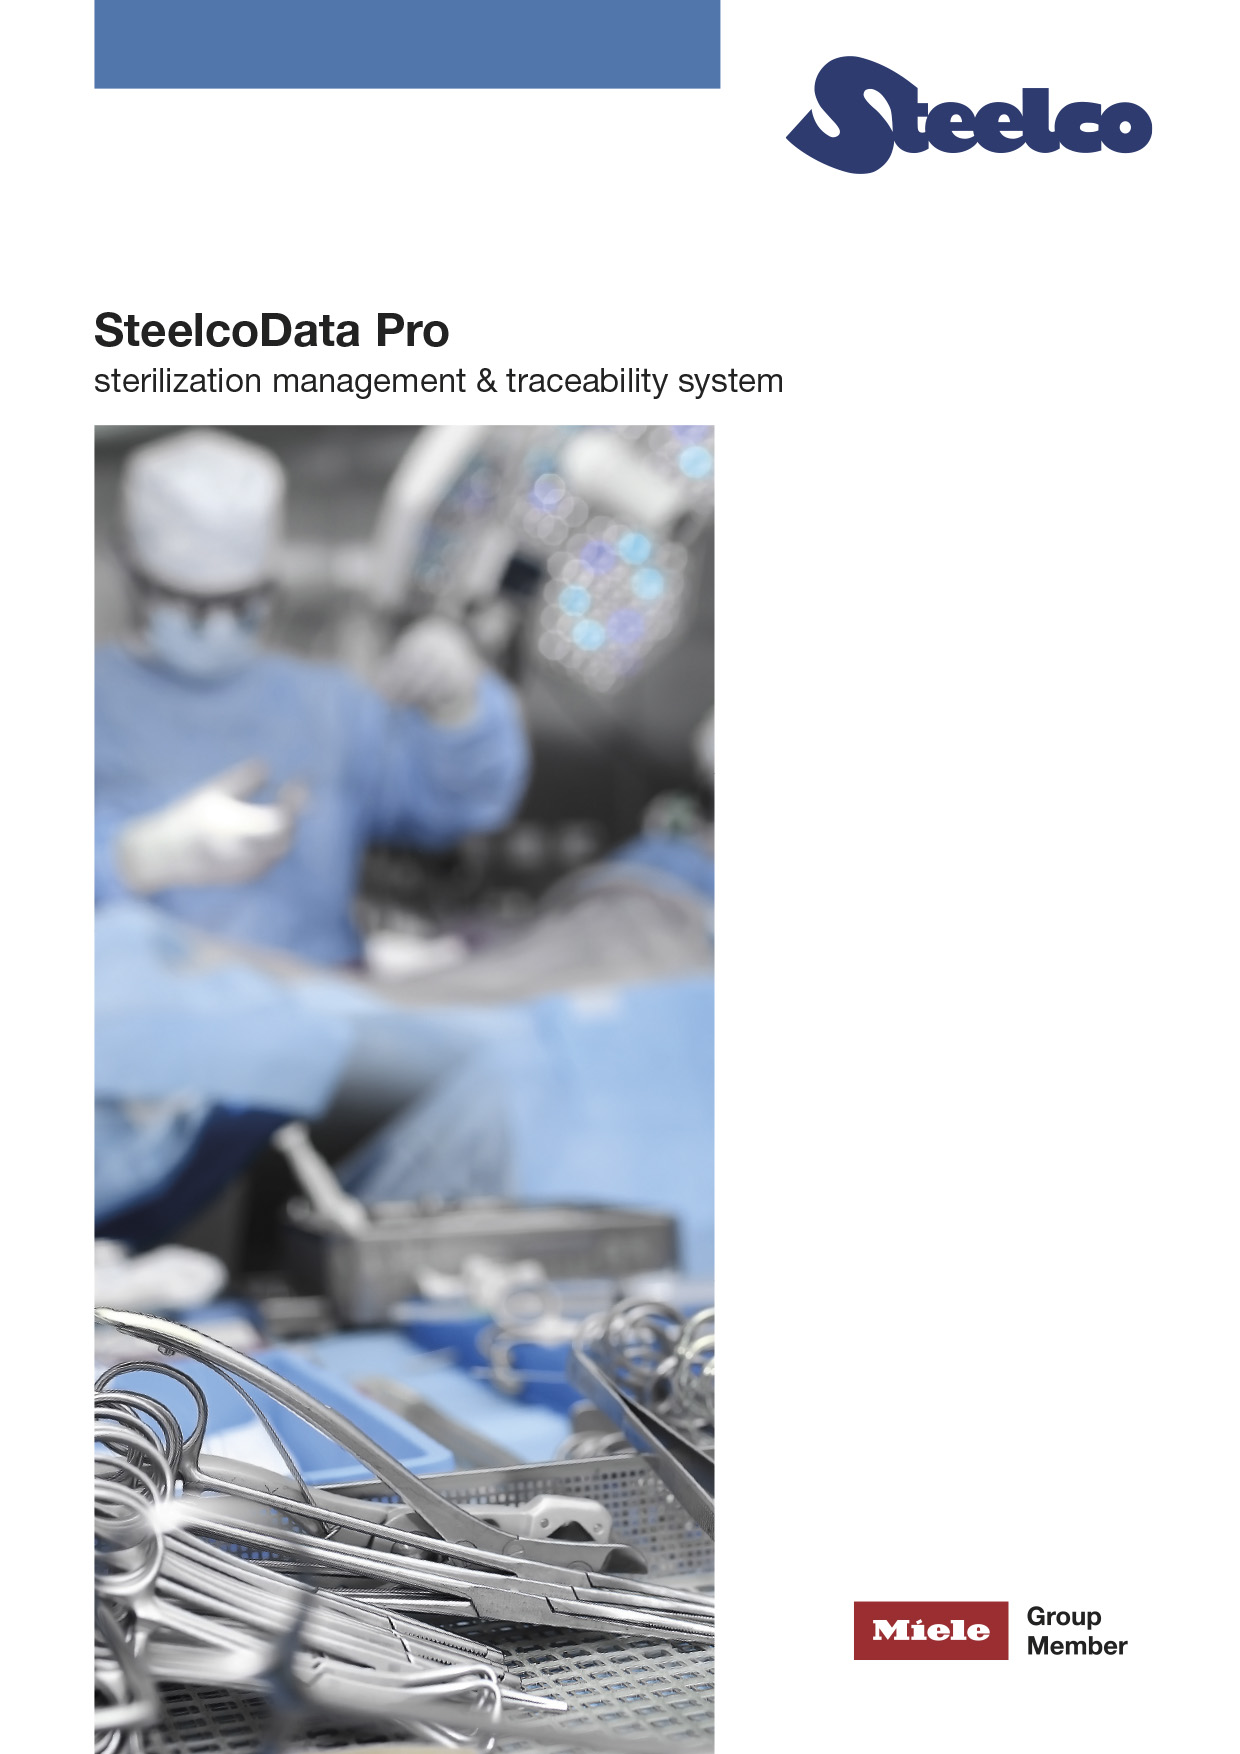 SteelcoData Pro - Management & traceability system